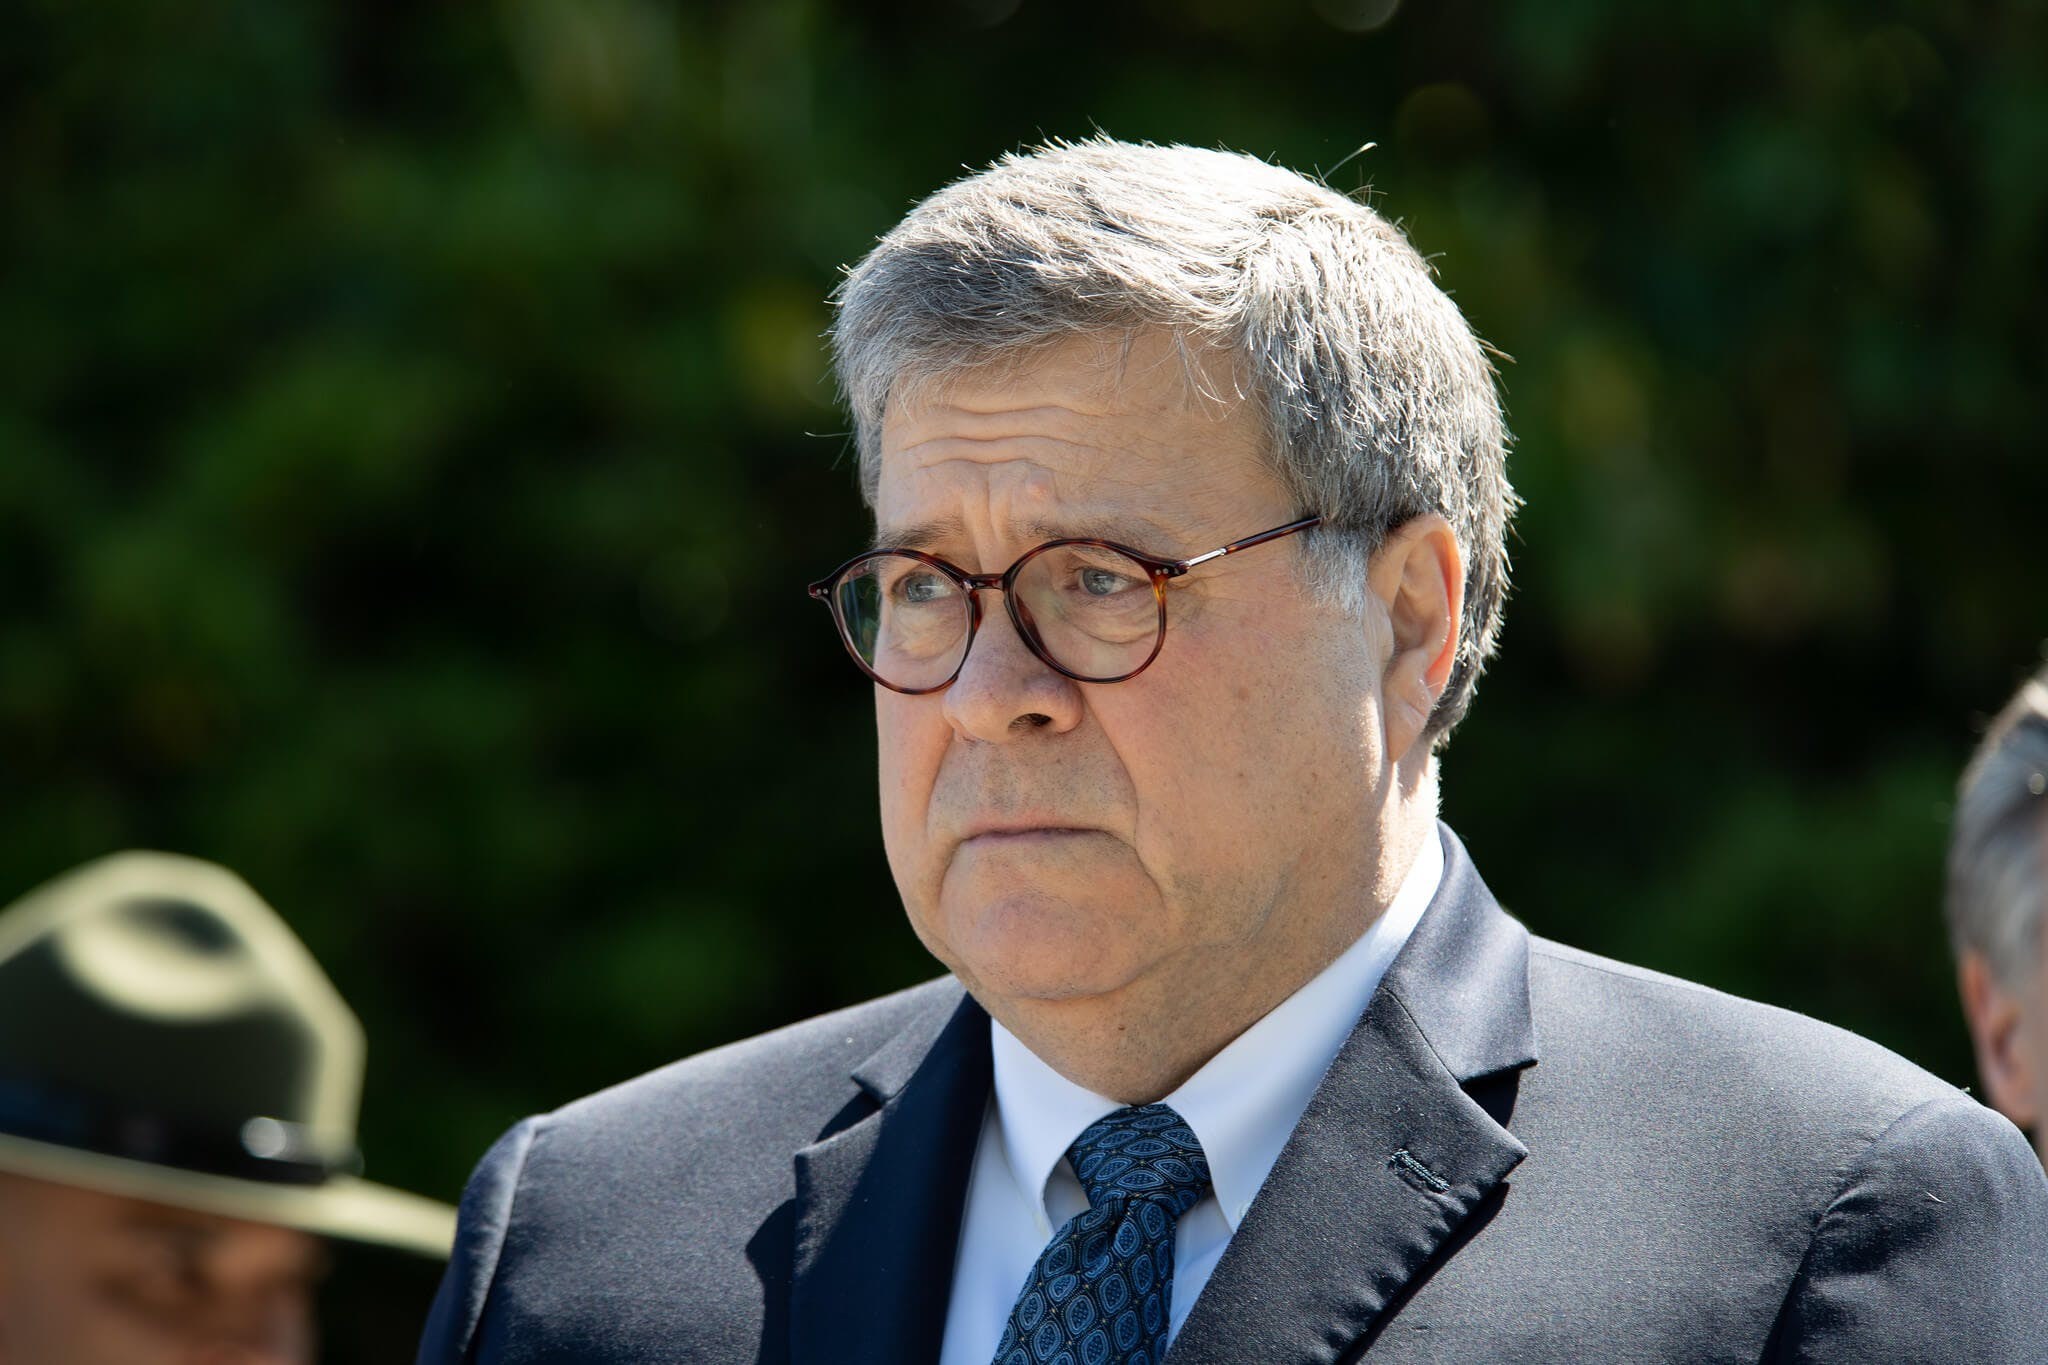 The EARN IT Act Attorney General Bill Barr